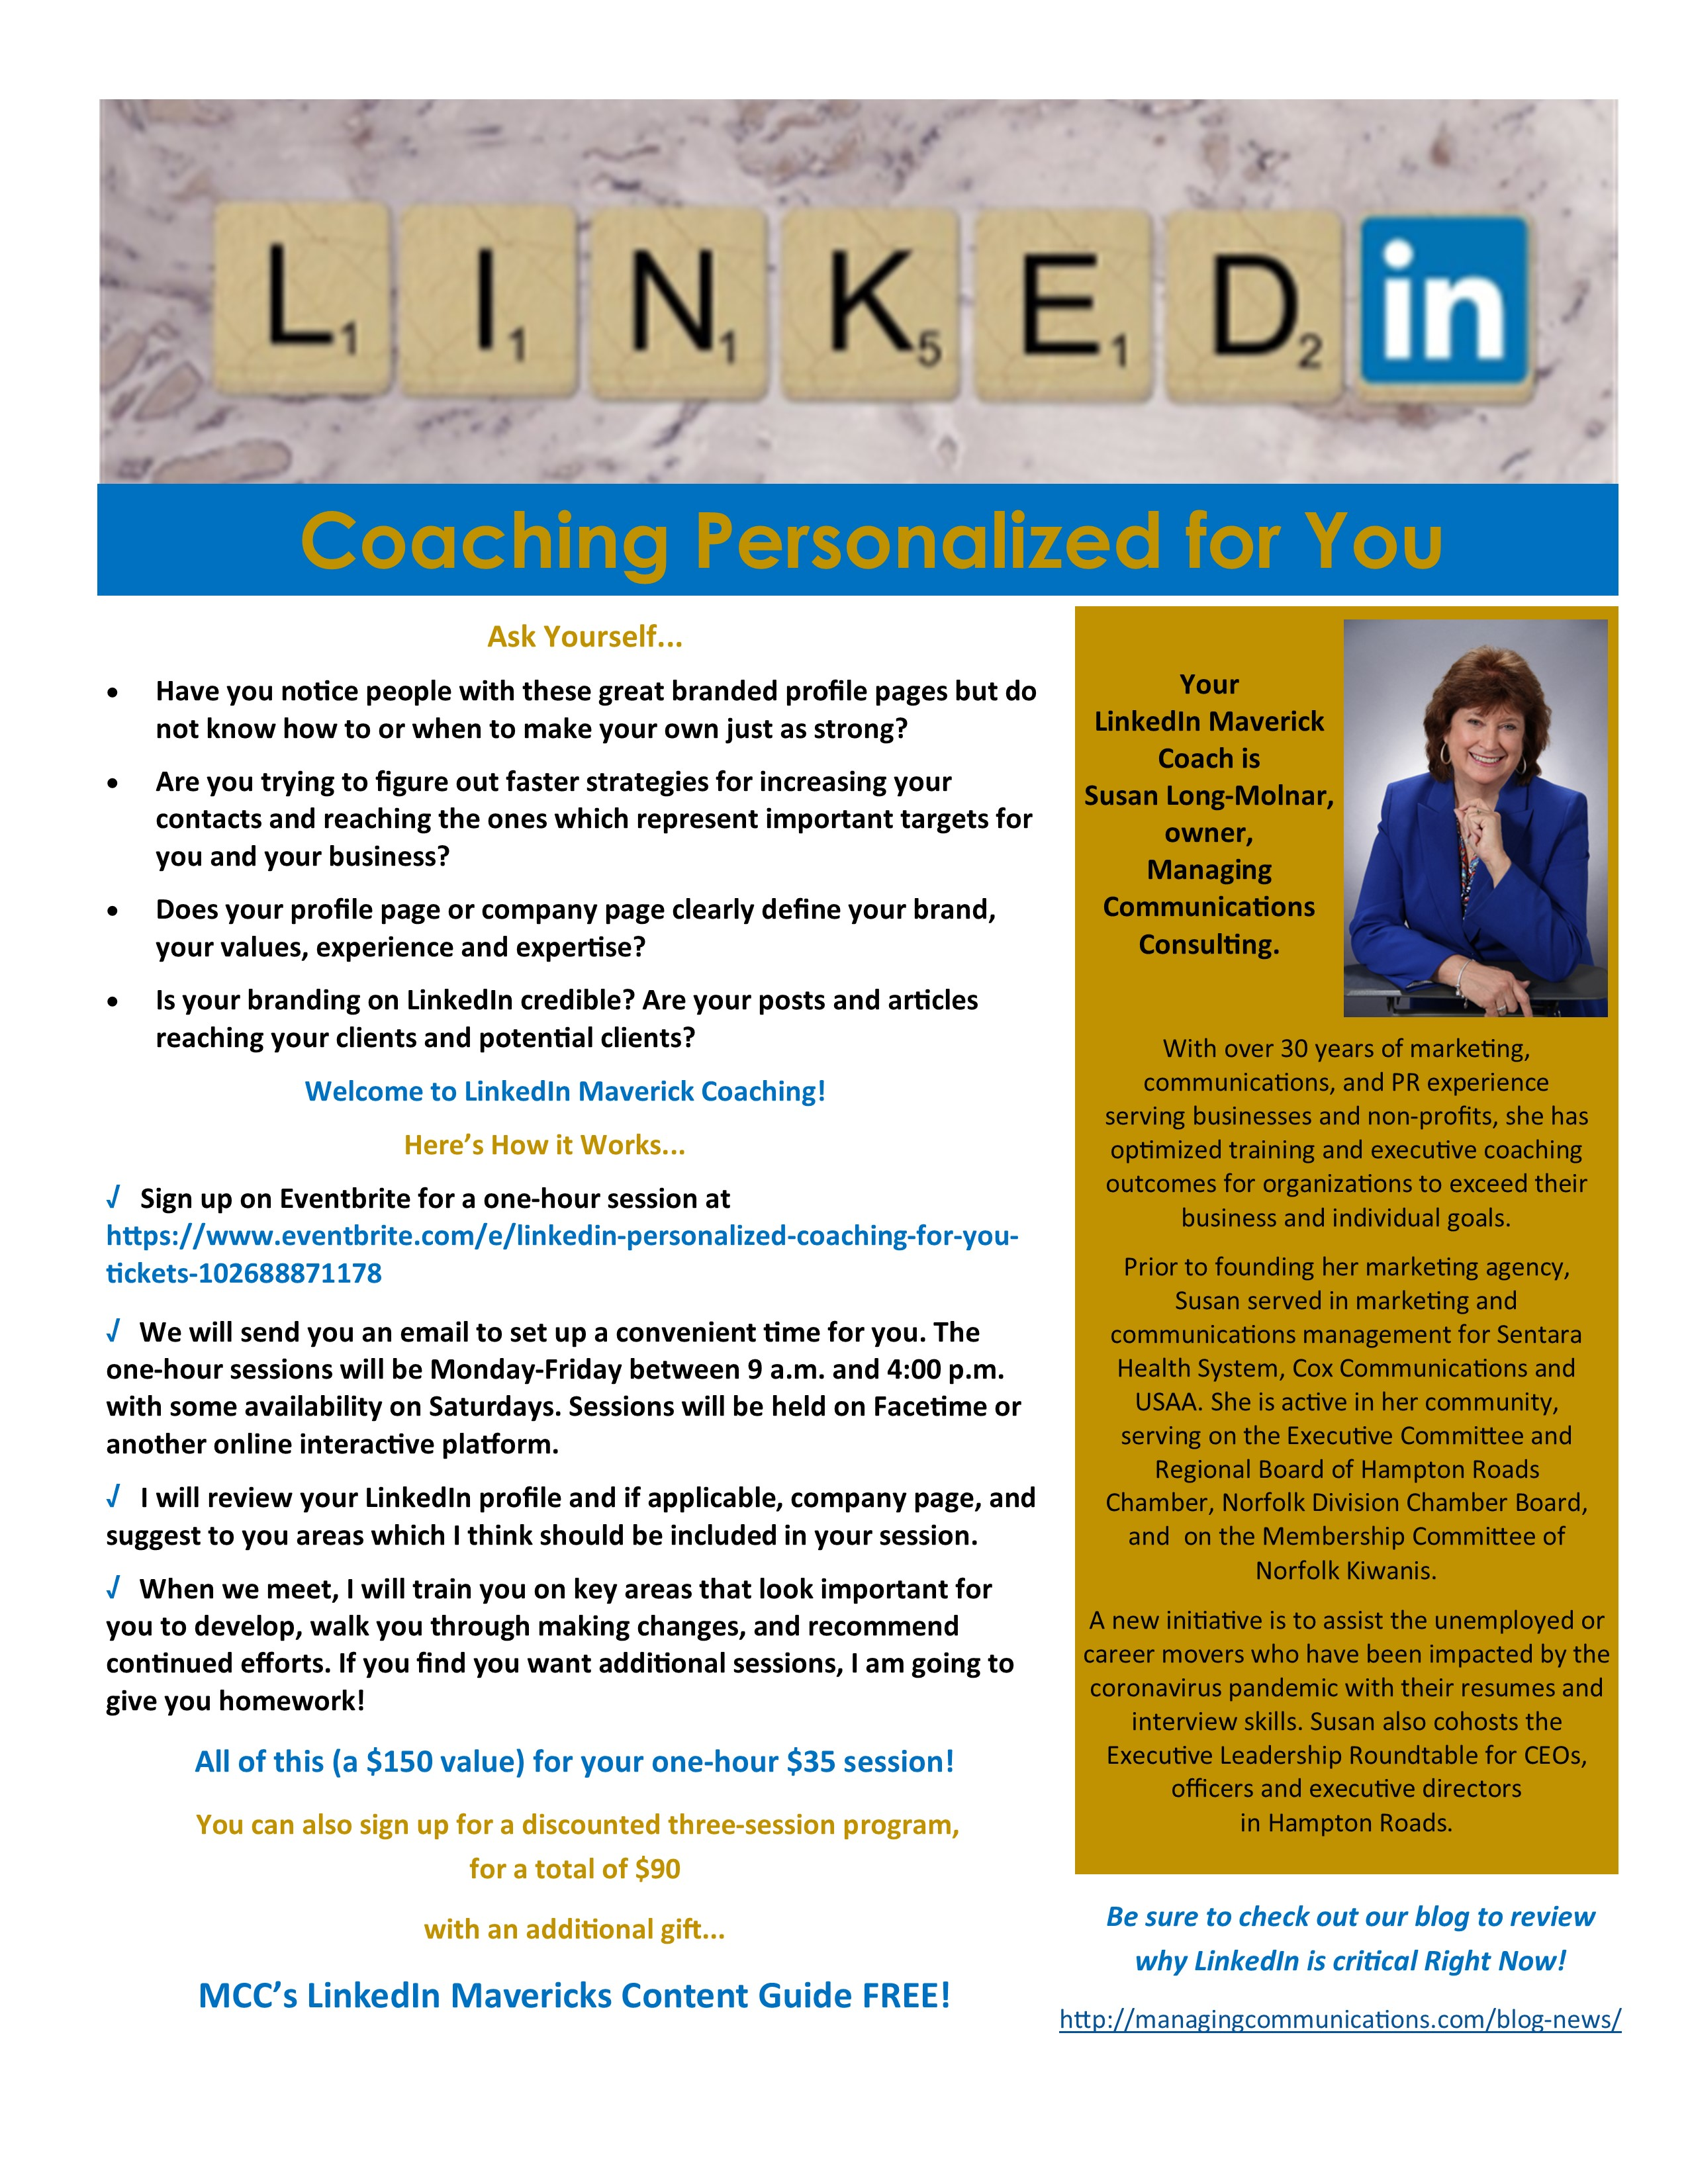 New LinkedIn Personalized Coaching